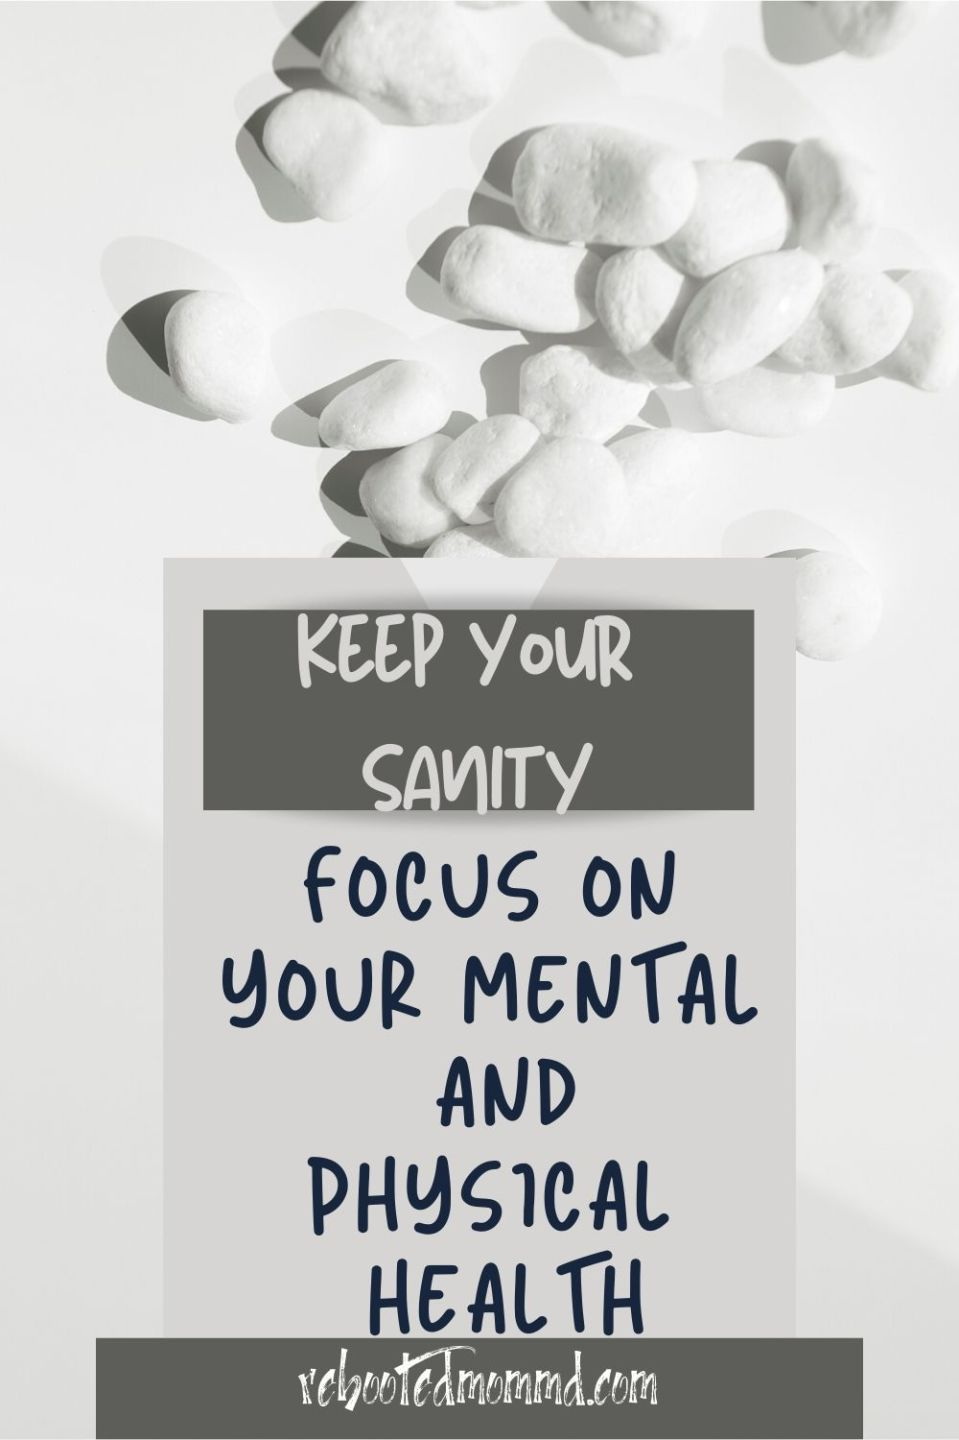 Focus on Your Mental and Physical Health When You're Home